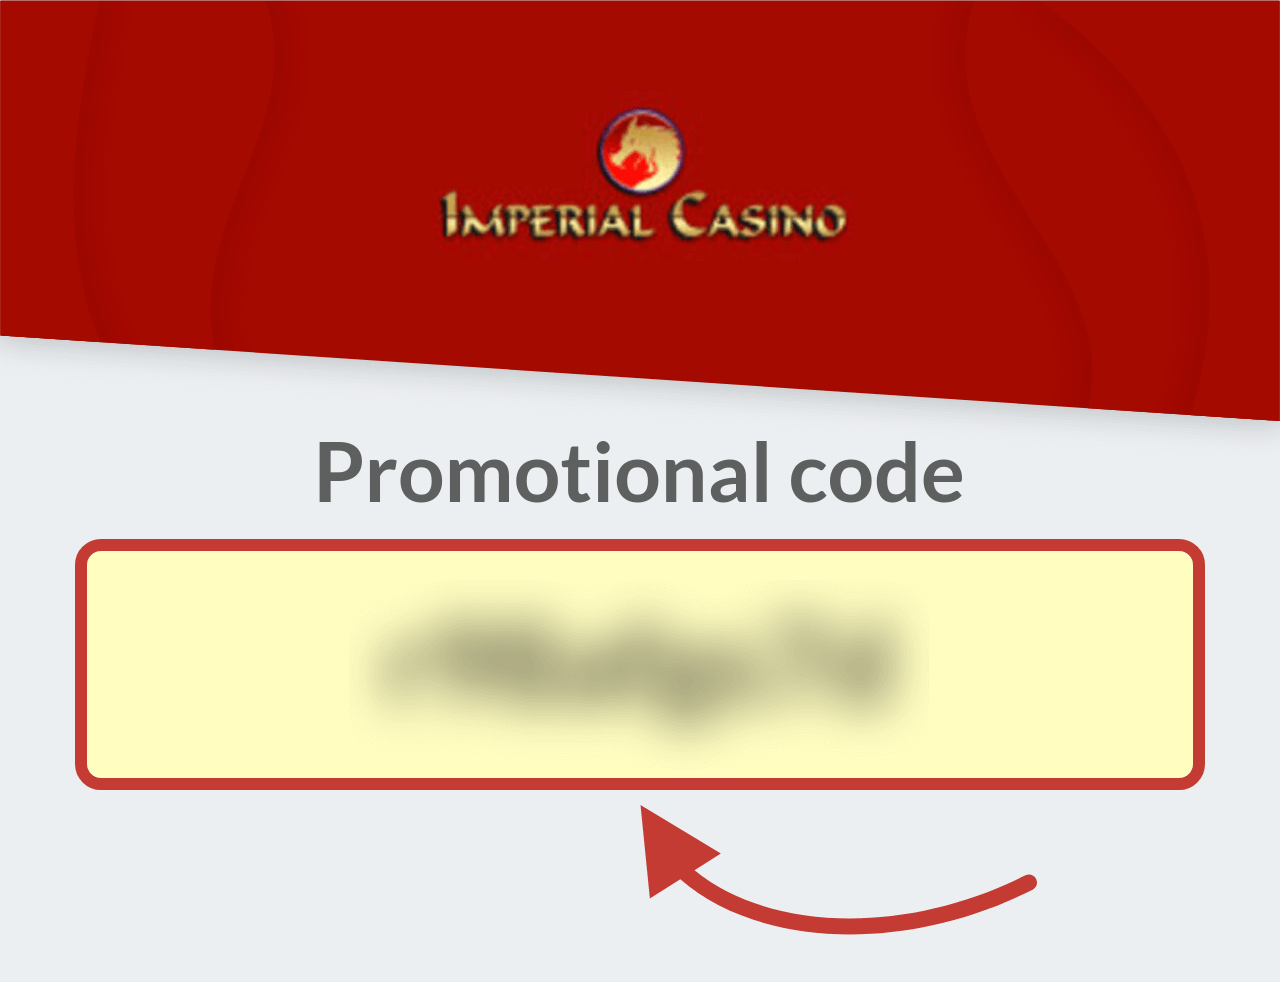 Imperial Casino Promotional Code